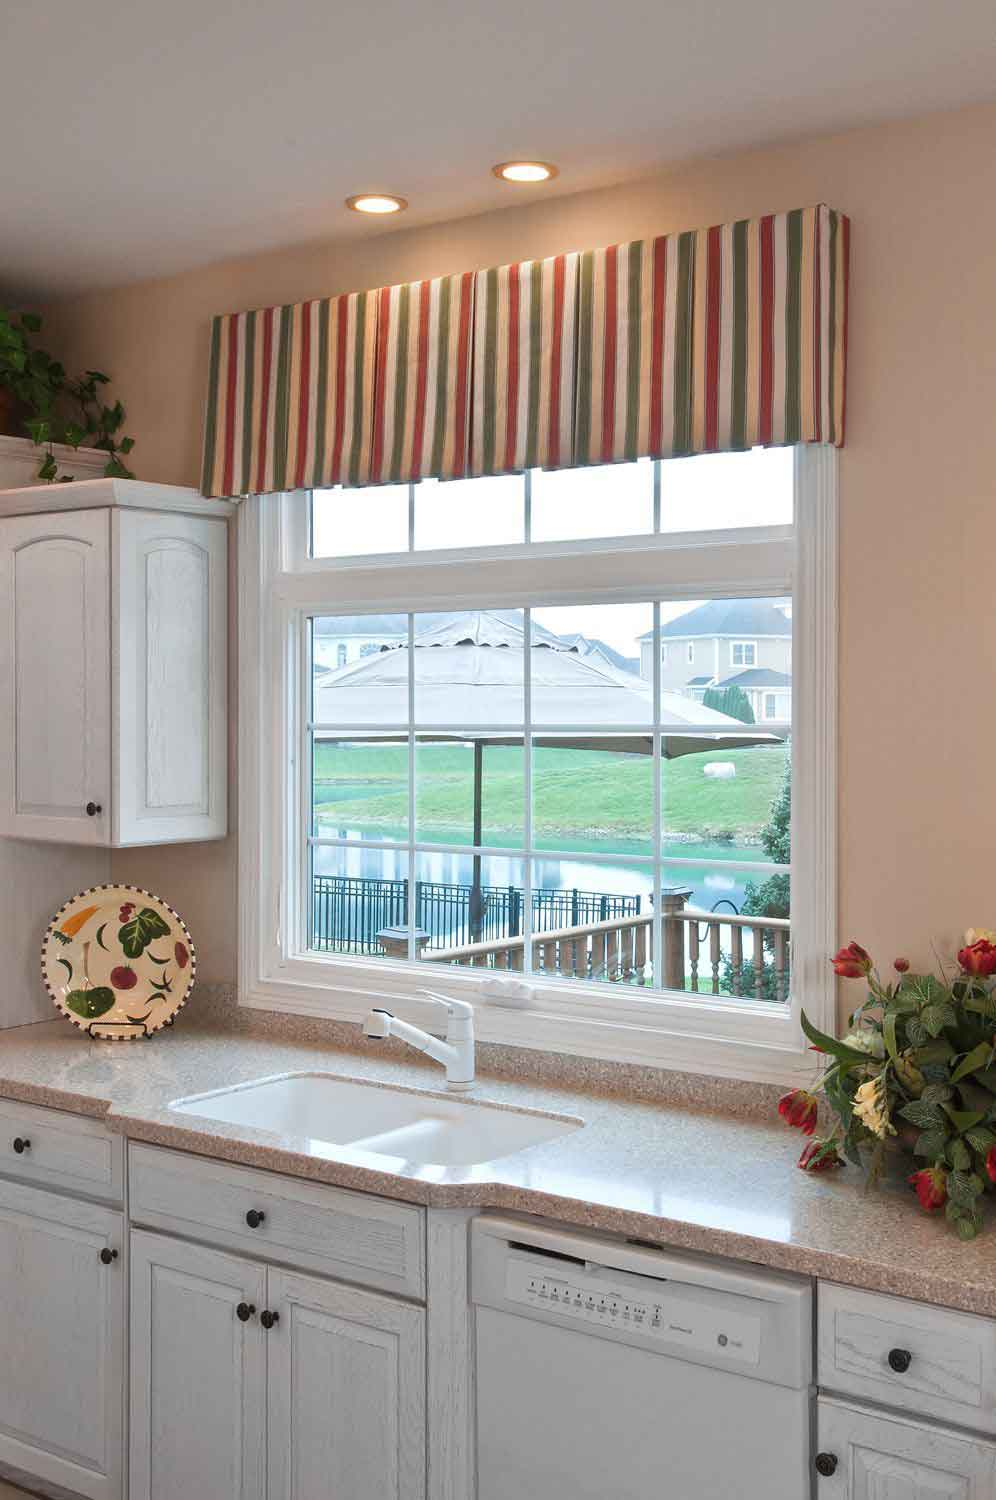 Customized Vinyl Awning Windows Sunrise Windows